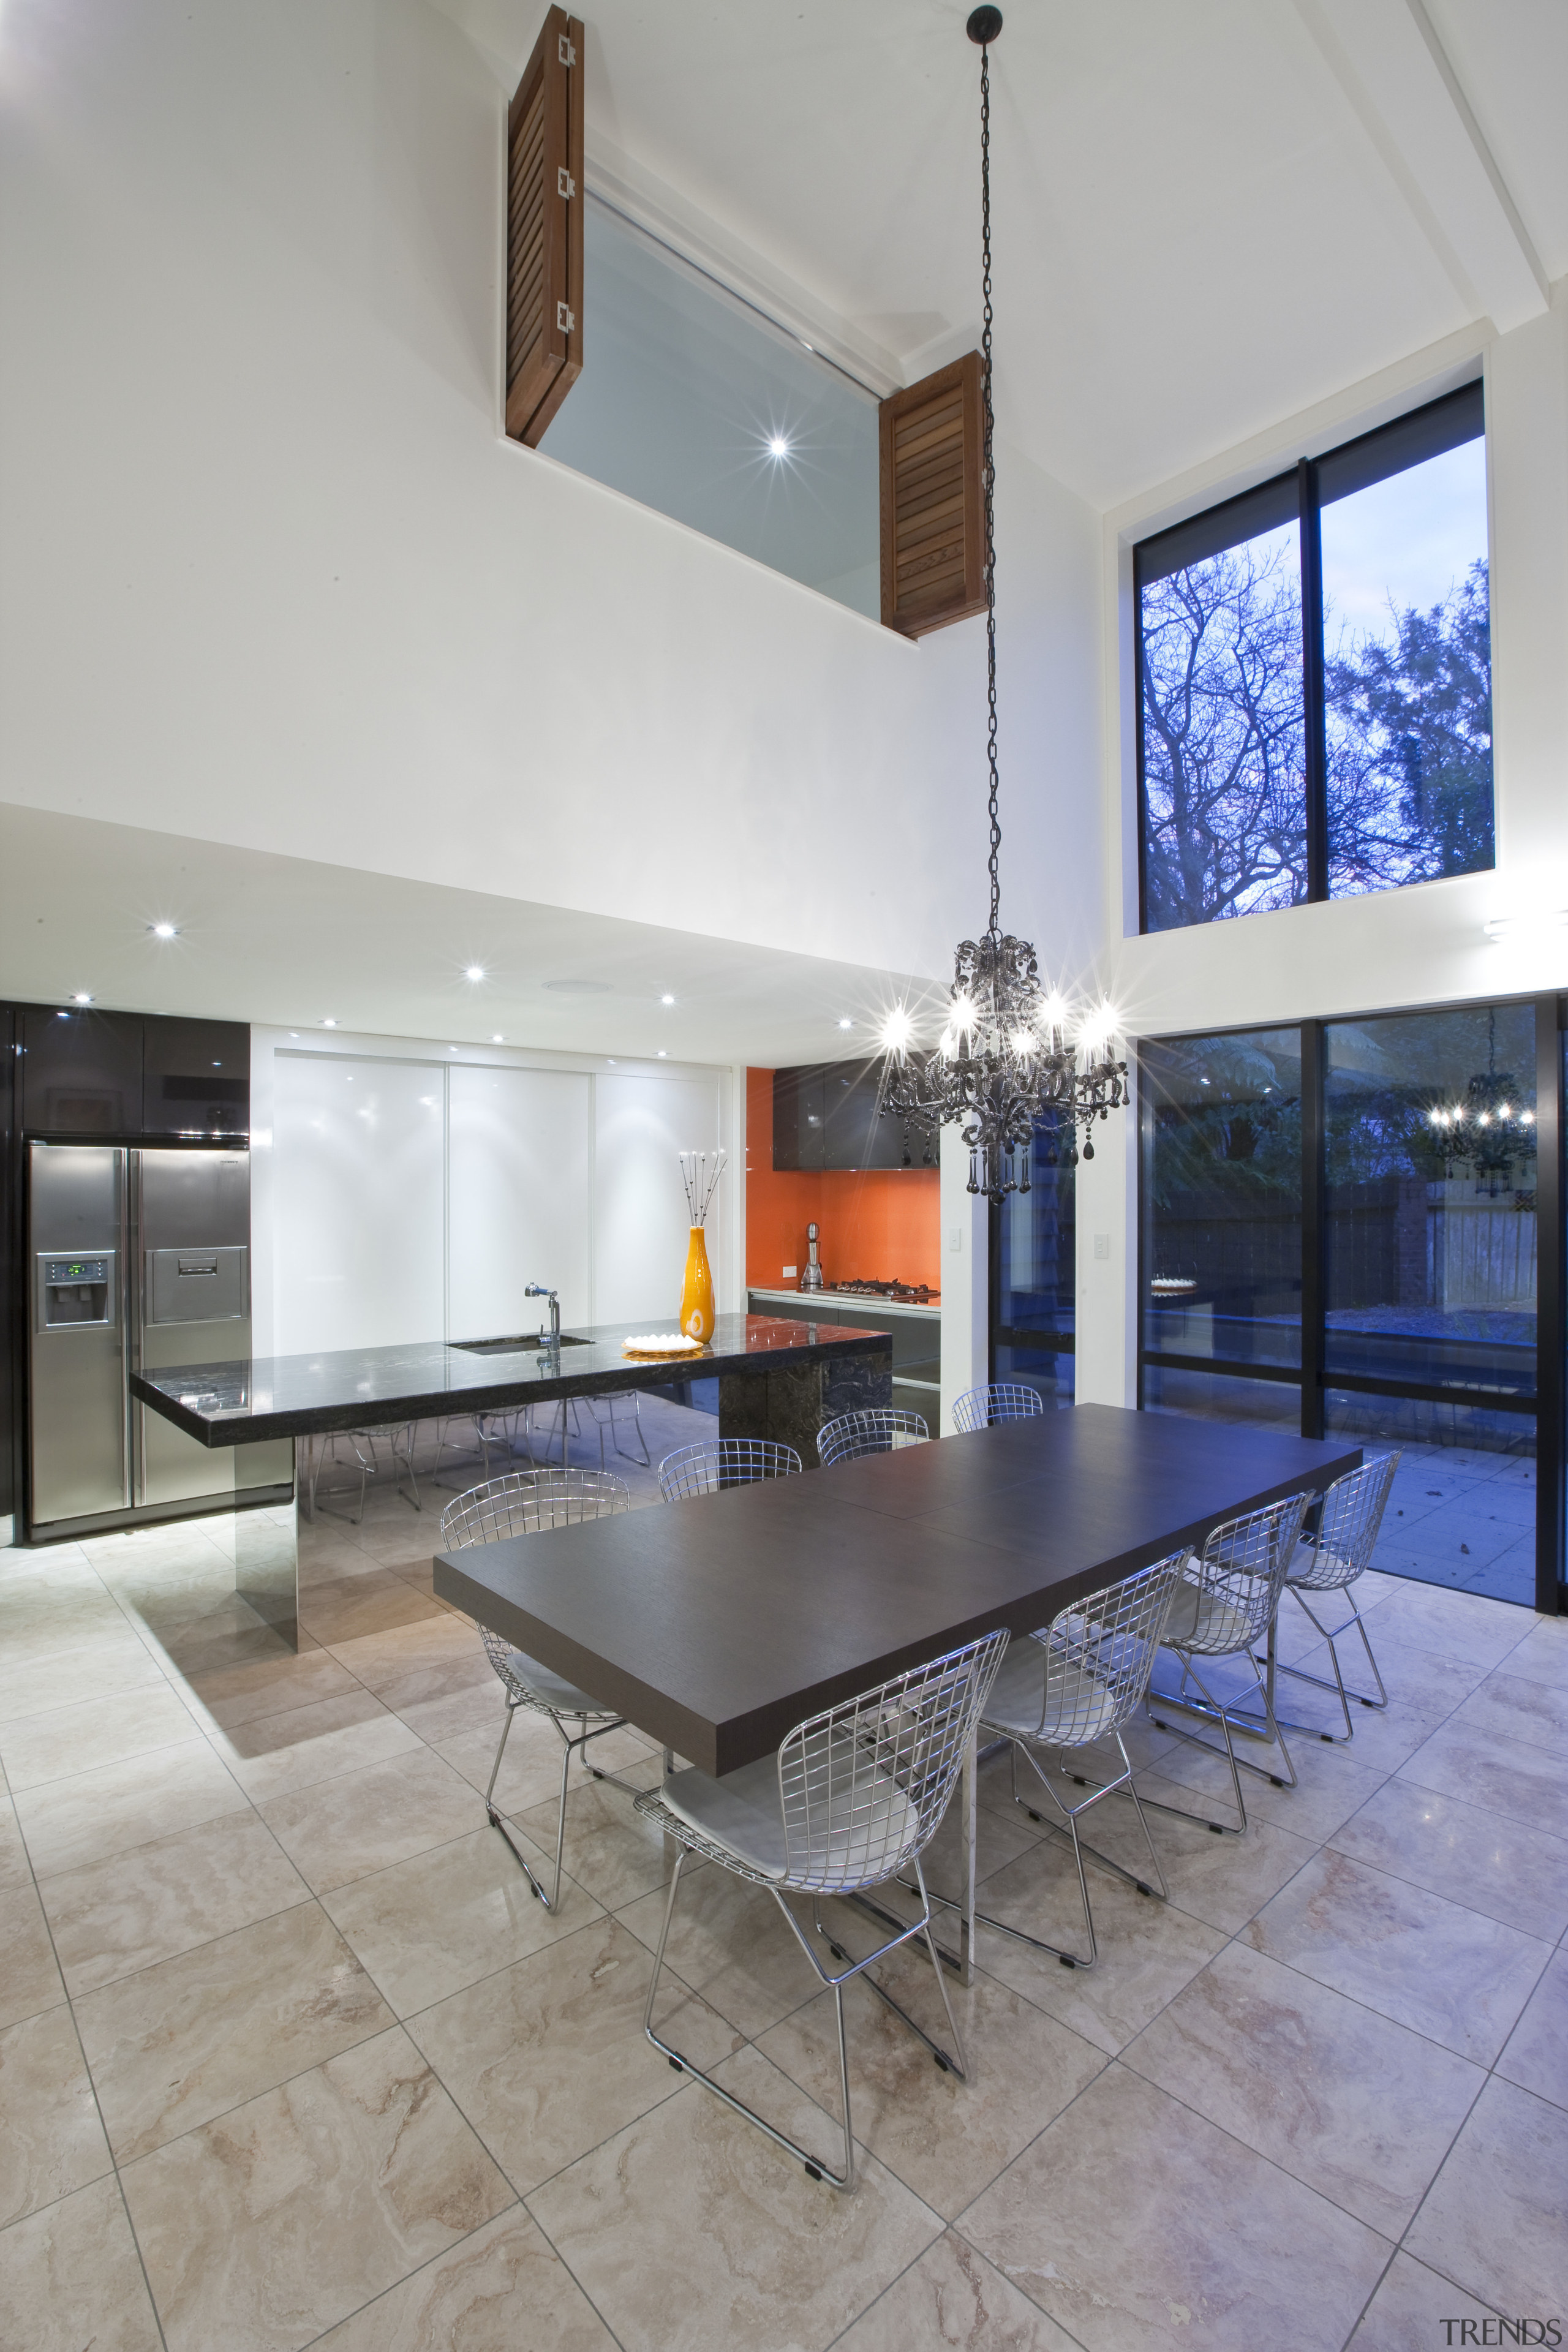 Clean-lined kitchen by Du Bois Design. Photography by architecture, ceiling, floor, flooring, house, interior design, living room, real estate, table, gray